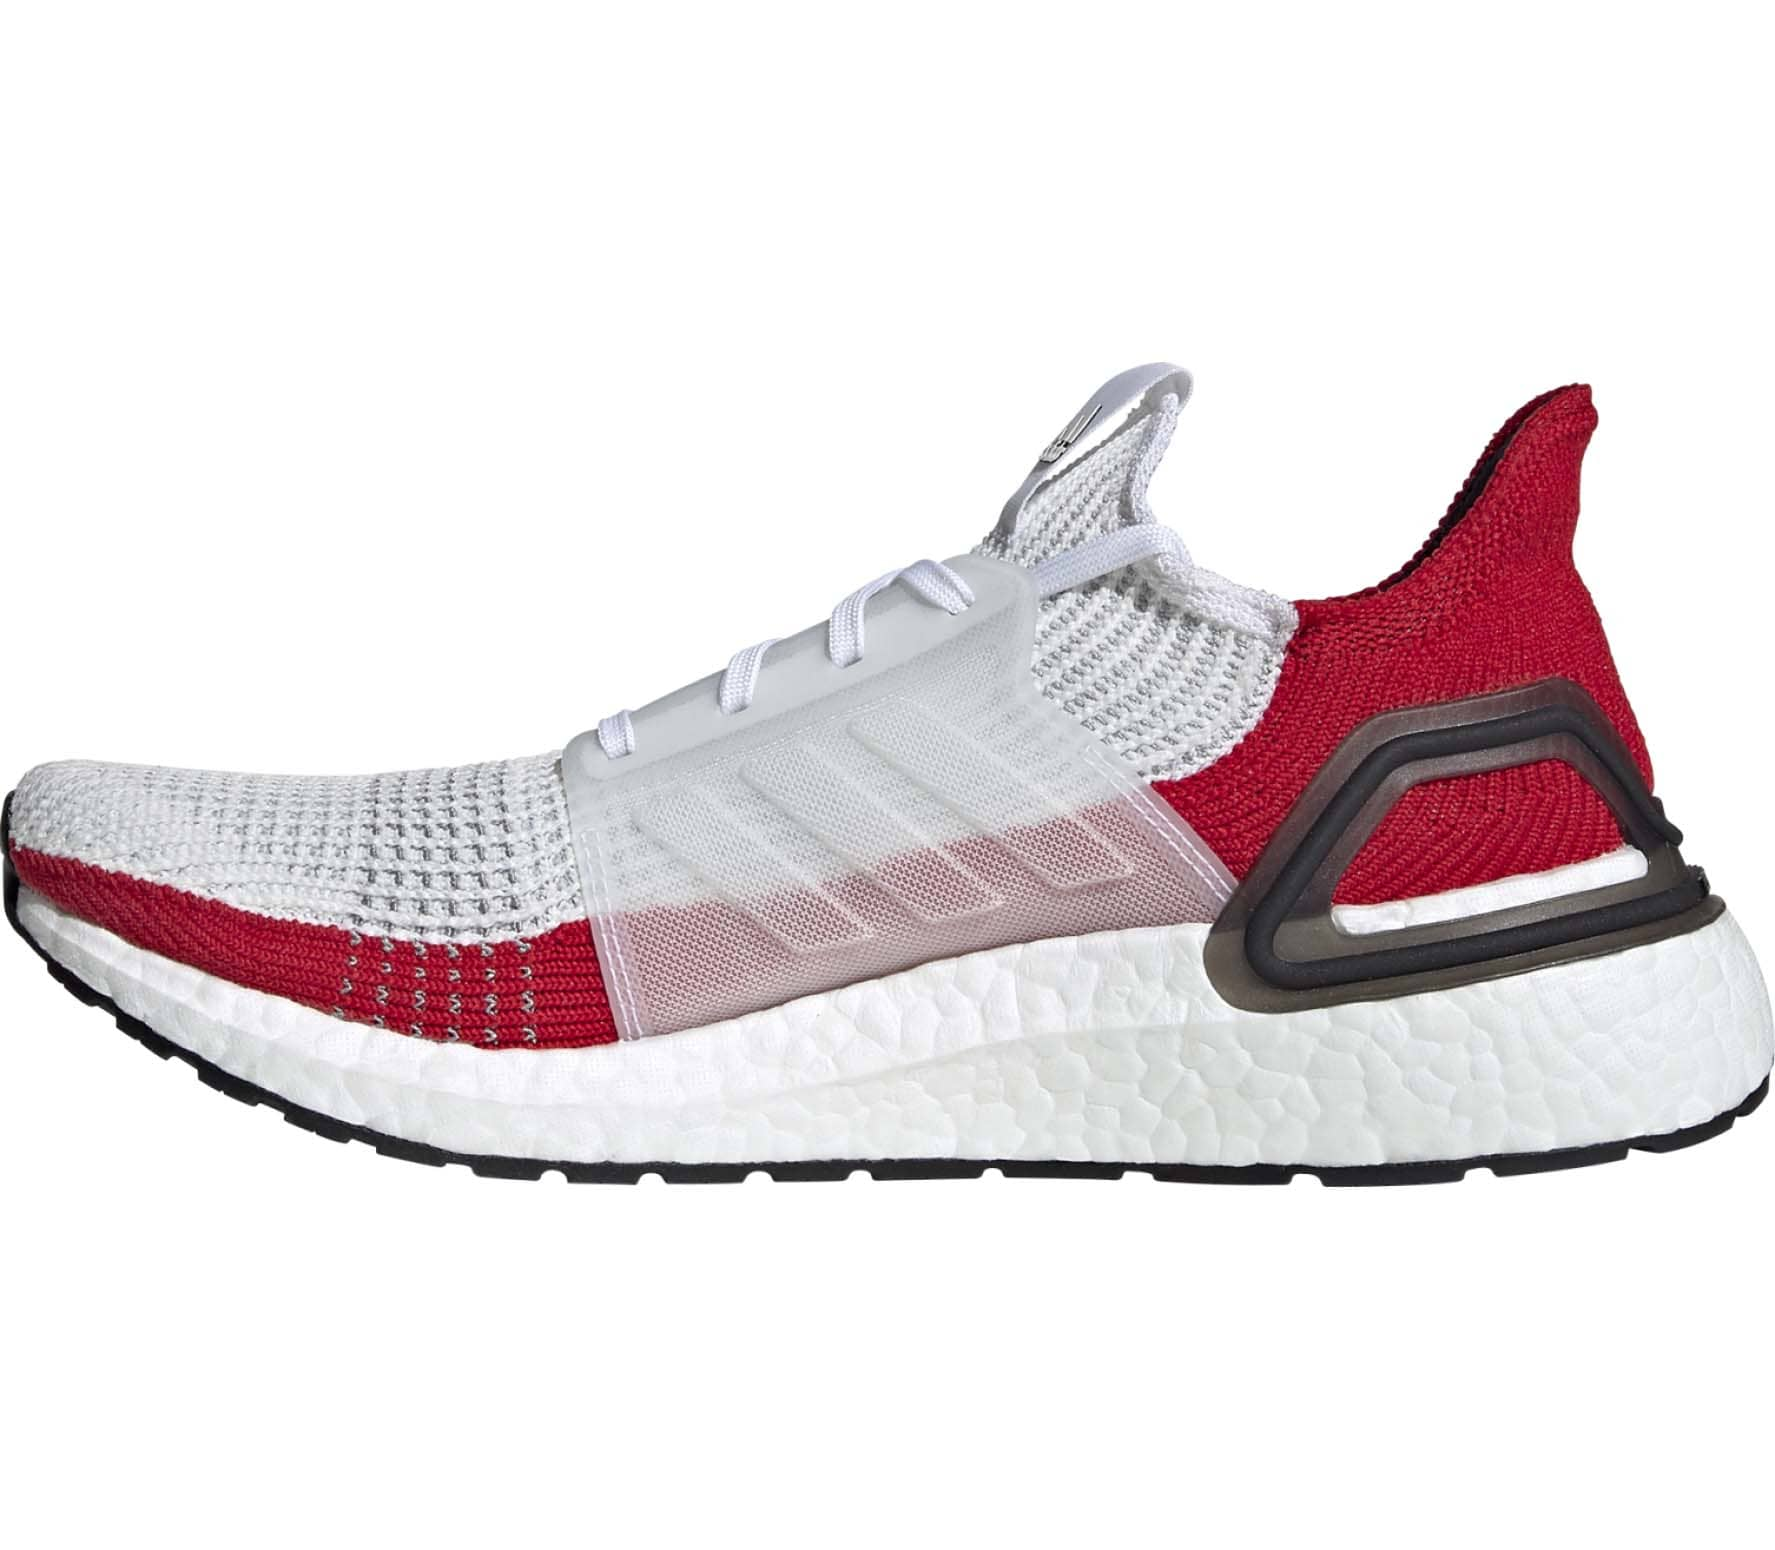 adidas Ultraboost 19 Hommes Chaussures running  blanc